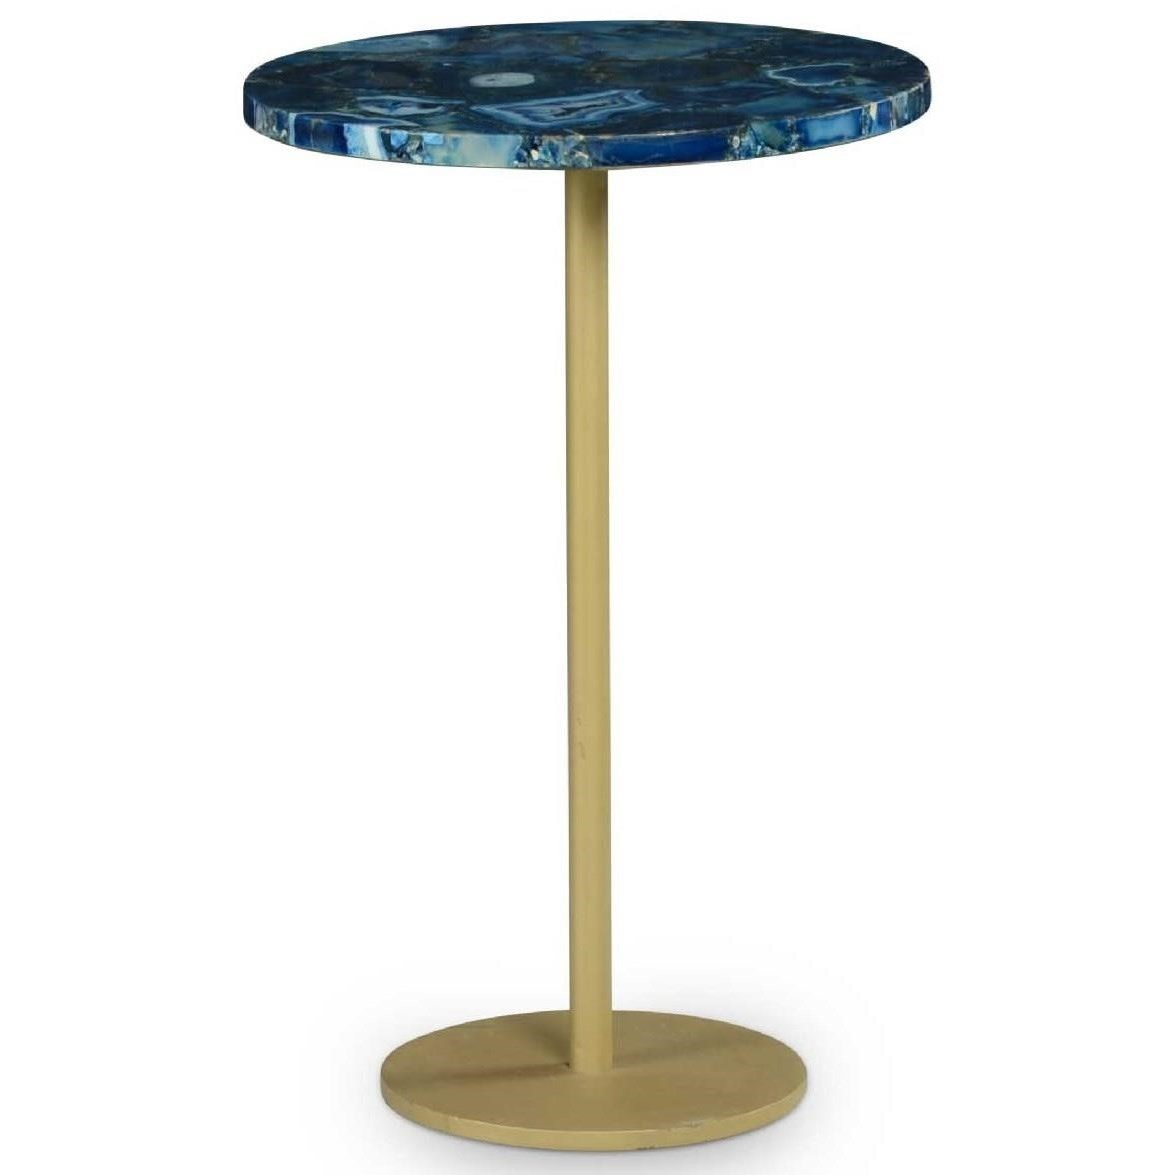 Oceana Agate Top Side Table by Steve Silver at Northeast Factory Direct